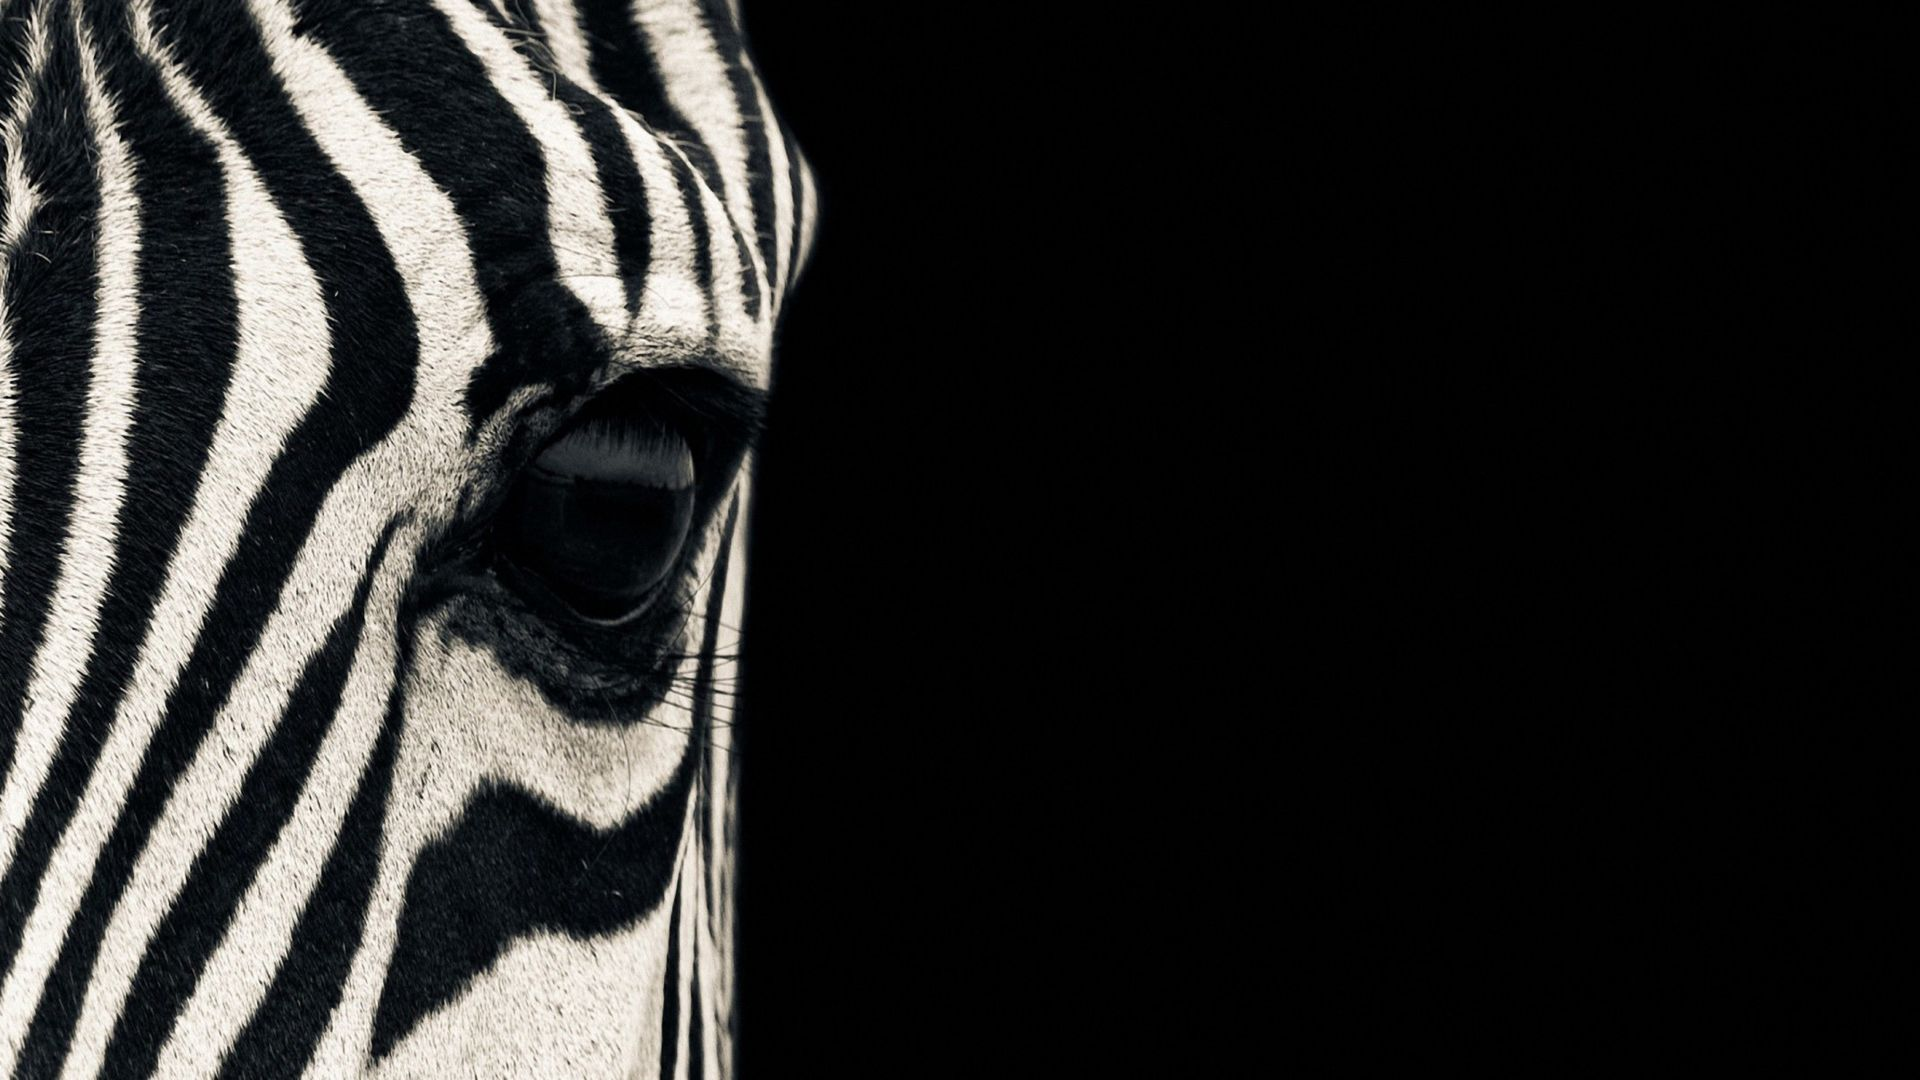 Zebra, eye, Black & White, couple, cute animals (horizontal)